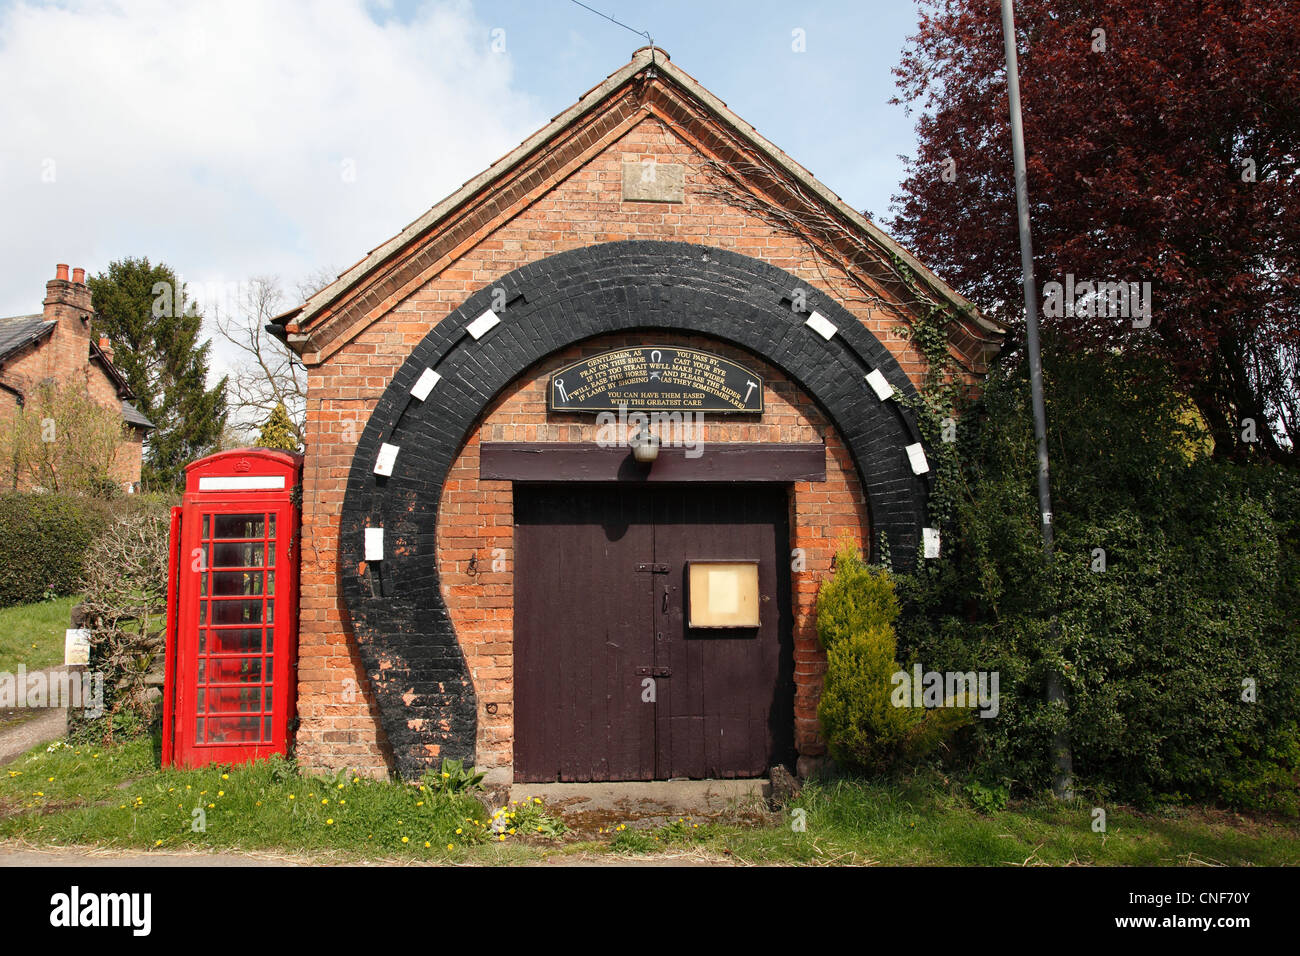 The old forge in the village of Gonalston, Nottinghamshire, England, U.K. - Stock Image